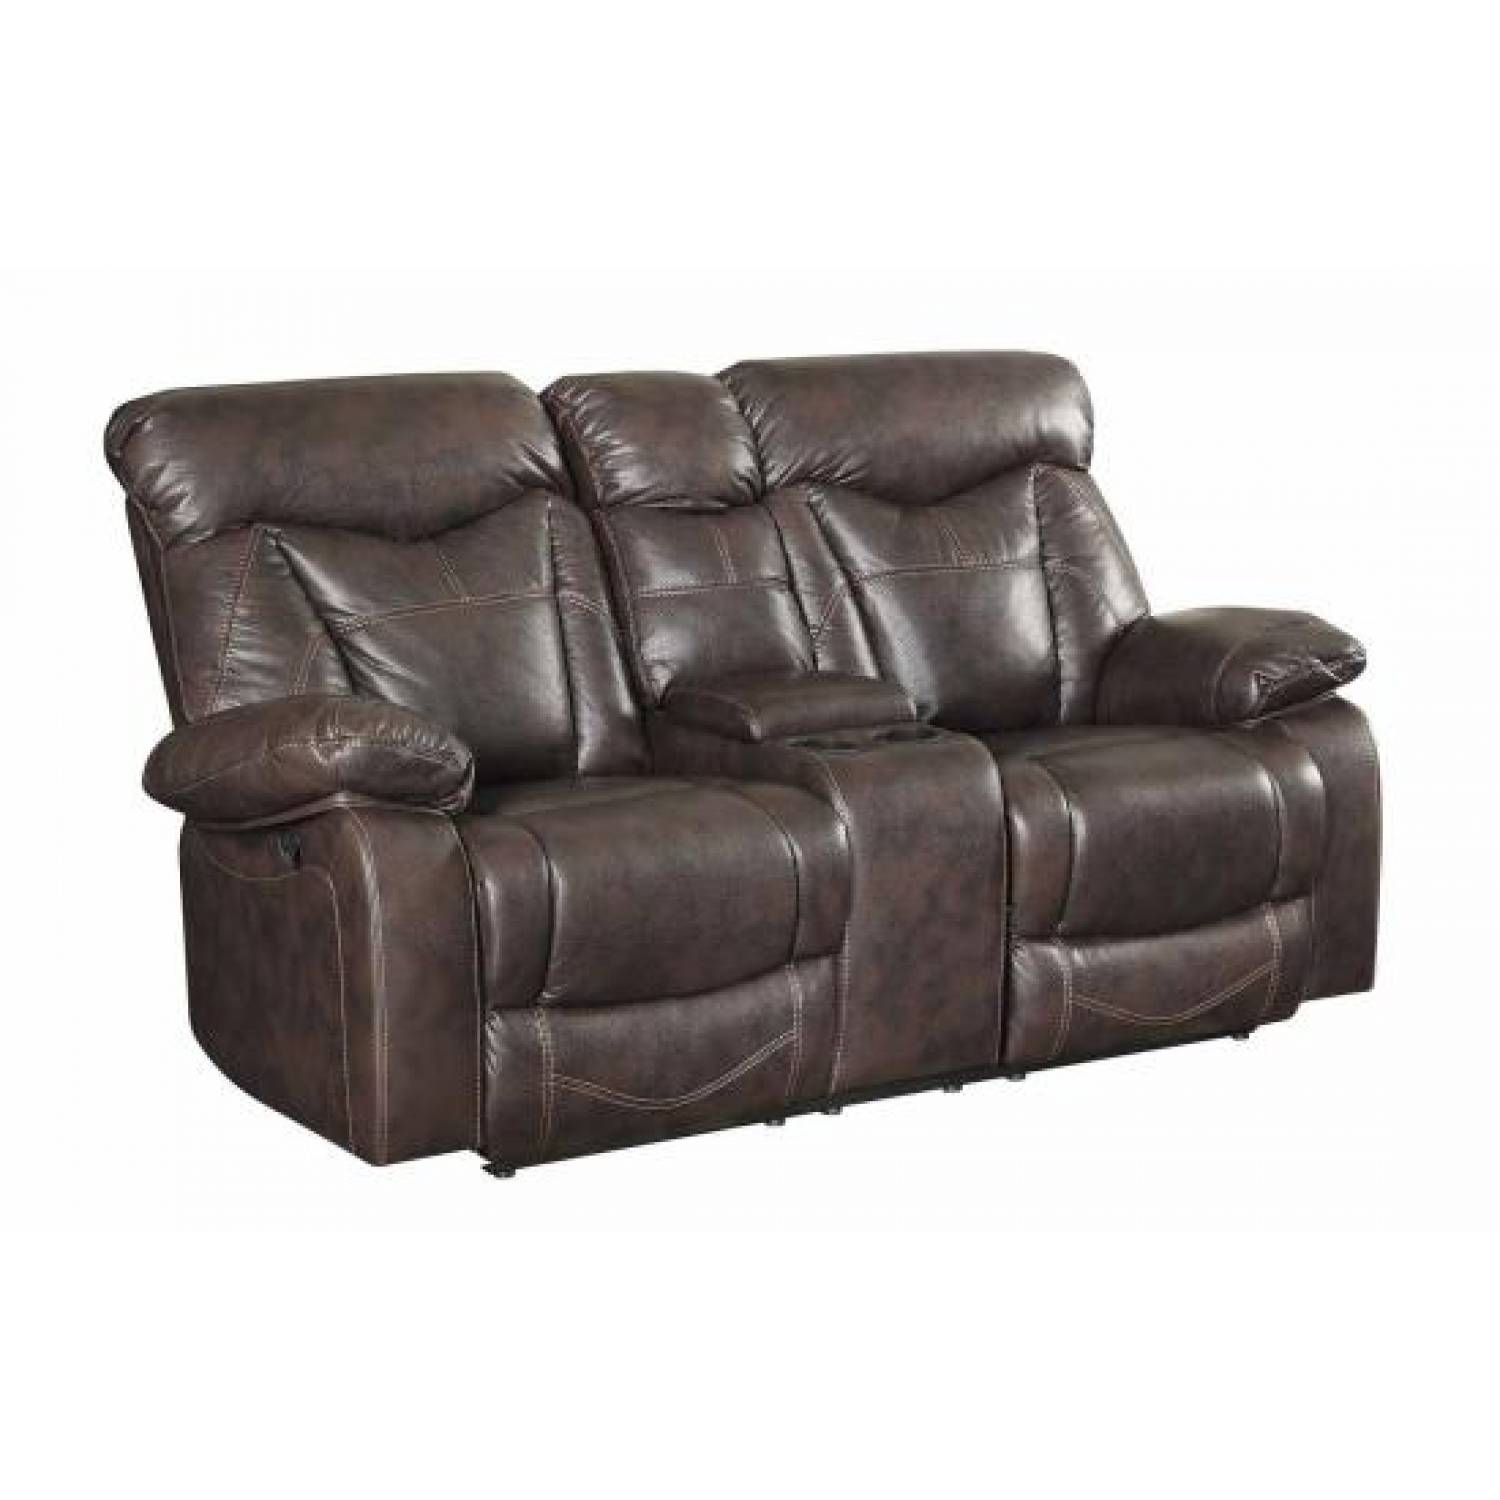 Zimmerman power reclining love seat with cup holders Loveseat with cup holders